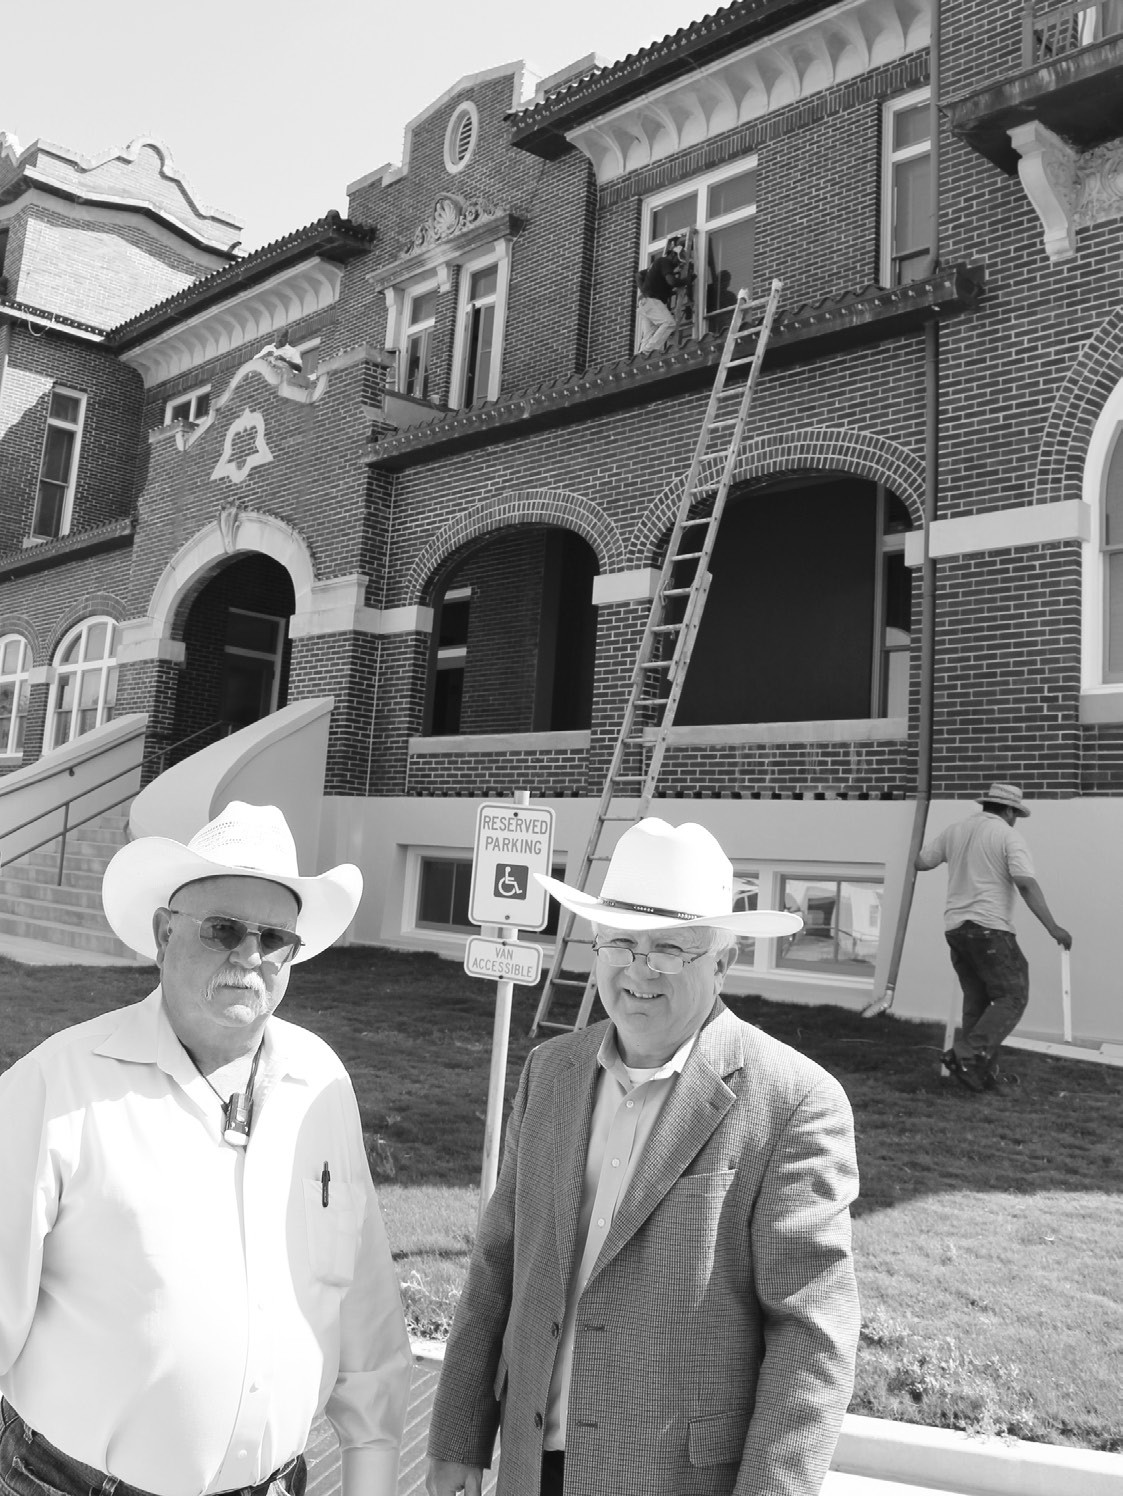 From left, Atascosa County Commissioner Lonnie Gillespie and County Auditor Ray Samson are standing on the west side of the Atascosa County Courthouse in Jourdanton that's undergoing needed maintenance. Both Gillespie and Samson have been overseeing the project.